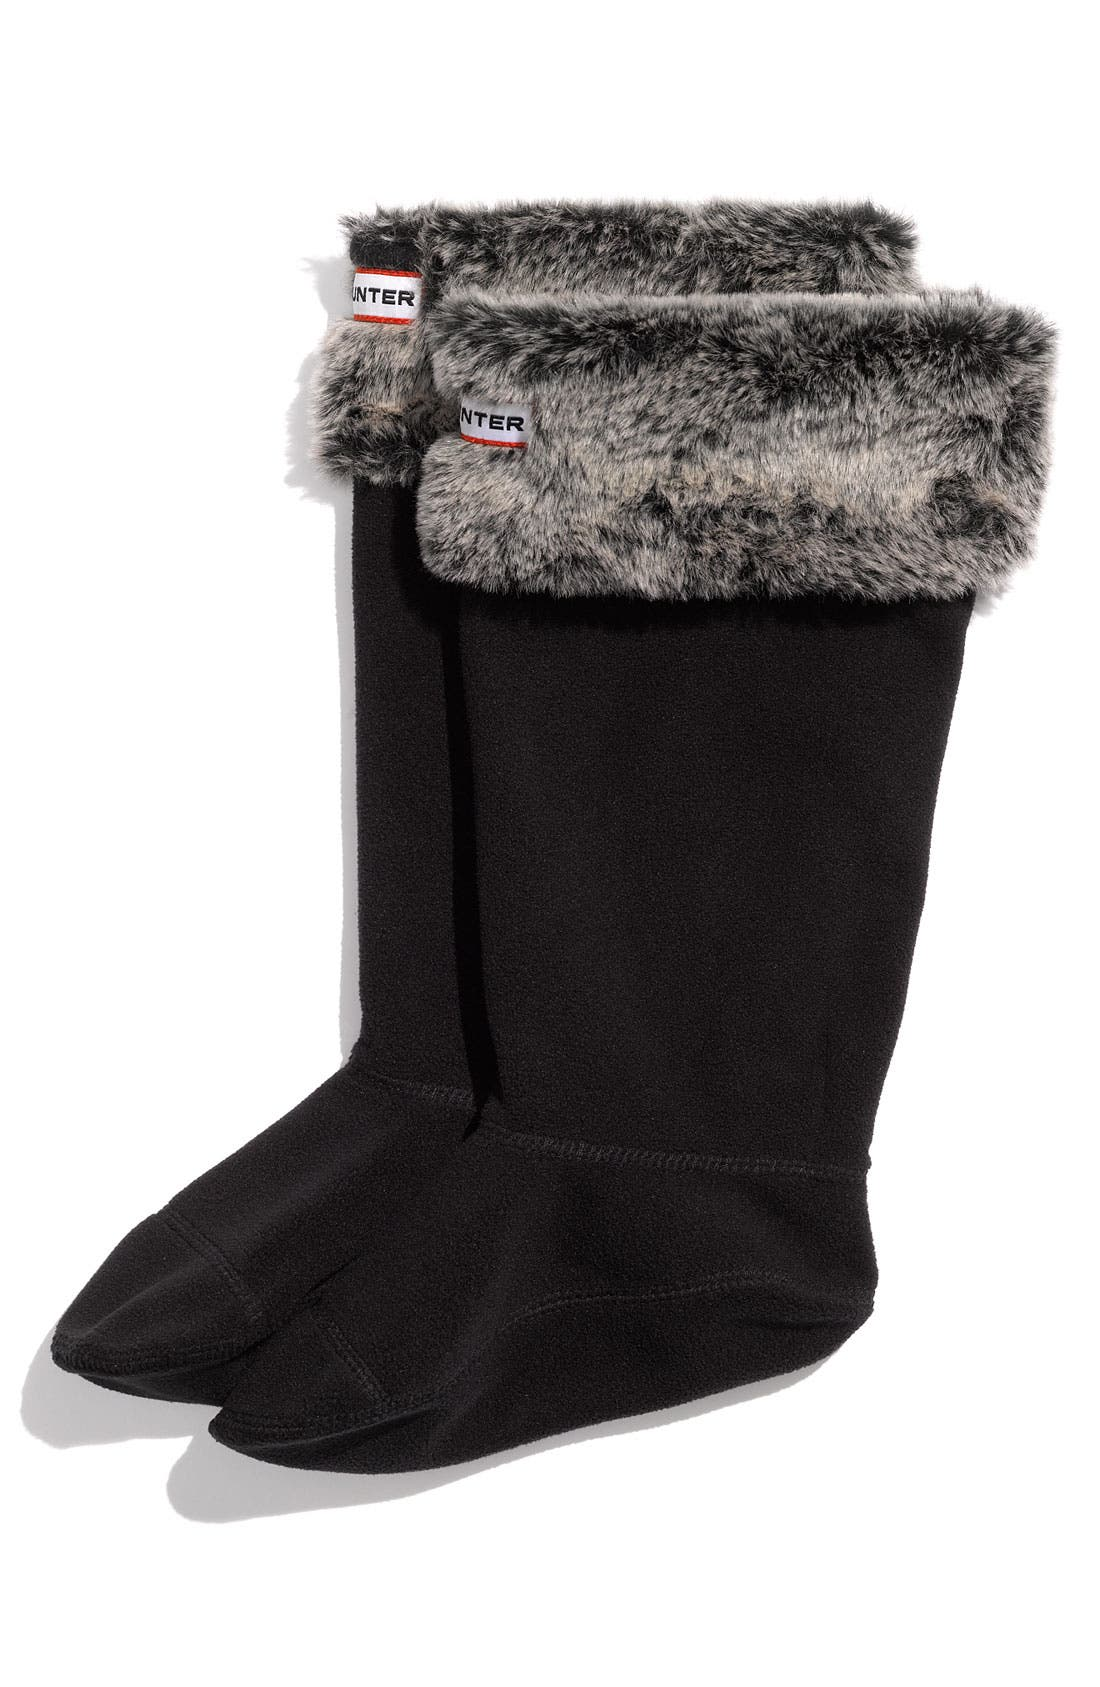 Main Image - Hunter 'Grizzly' Welly Socks